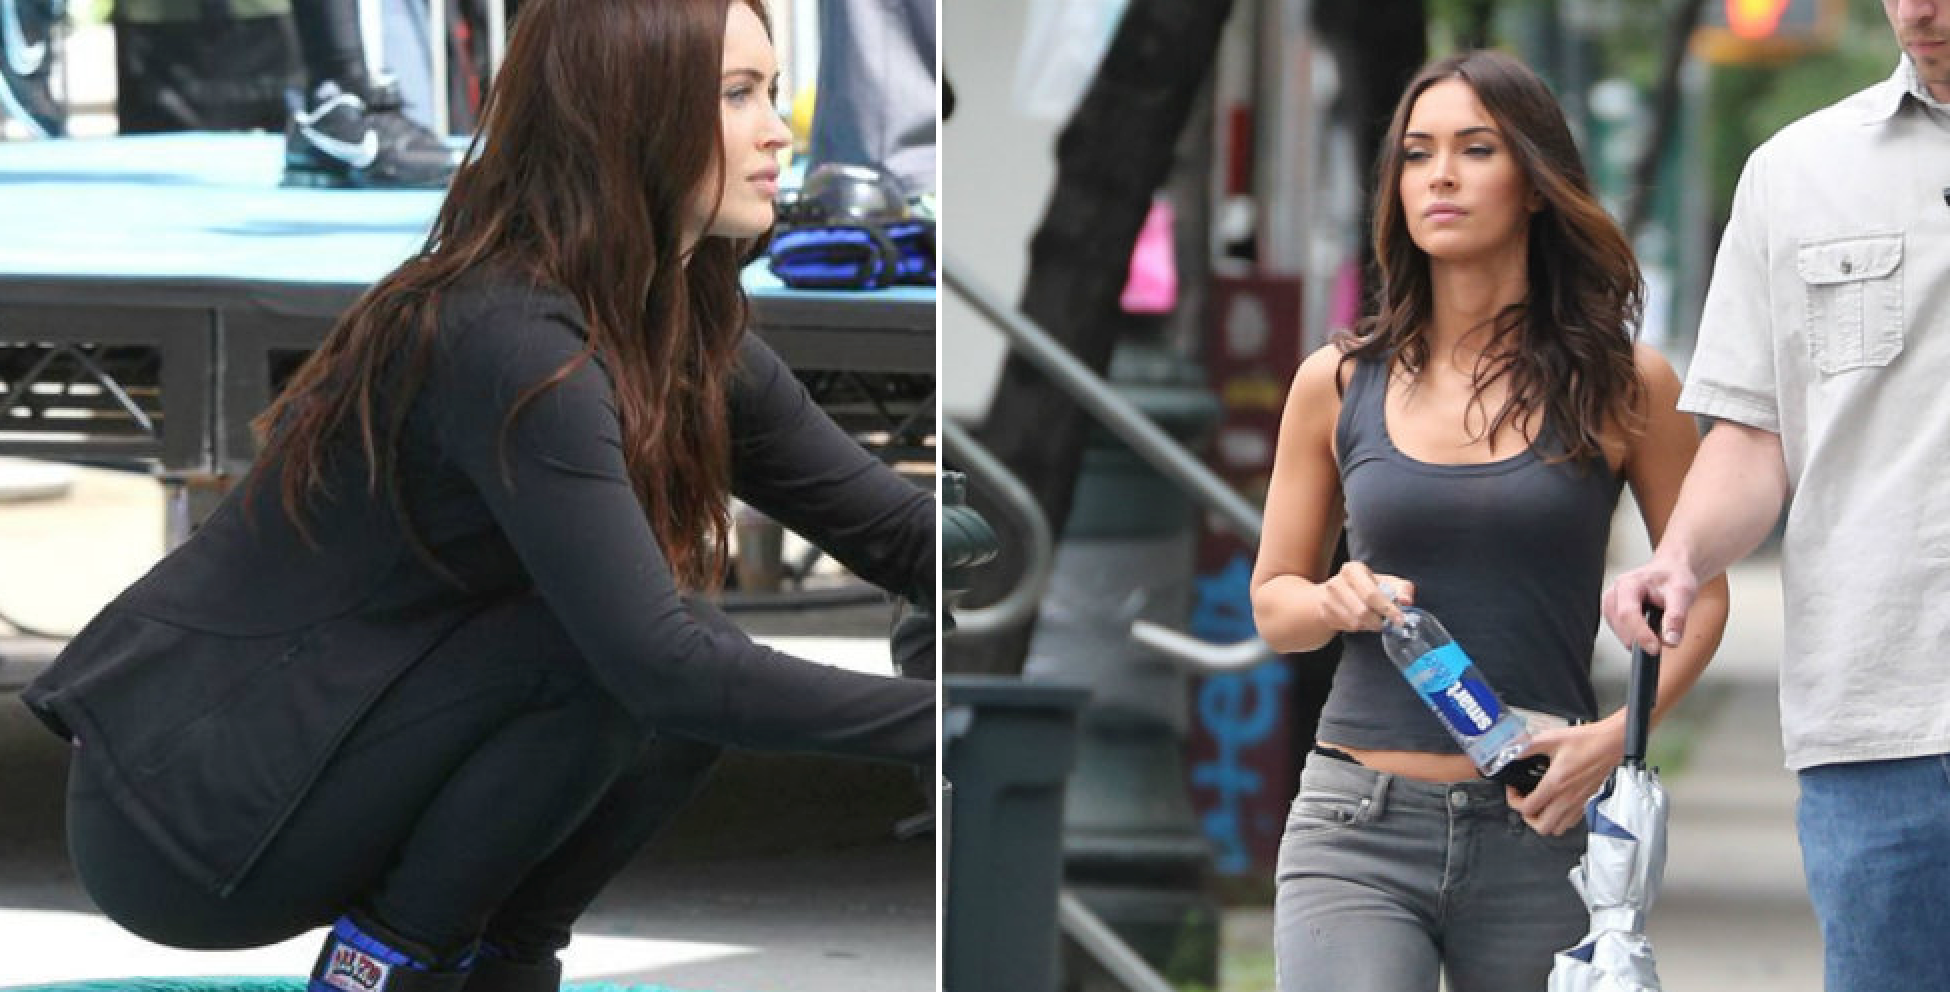 a2375c5fa 20 Things Only Megan Fox s Personal Trainer Could Tell Us About Her  Lifestyle